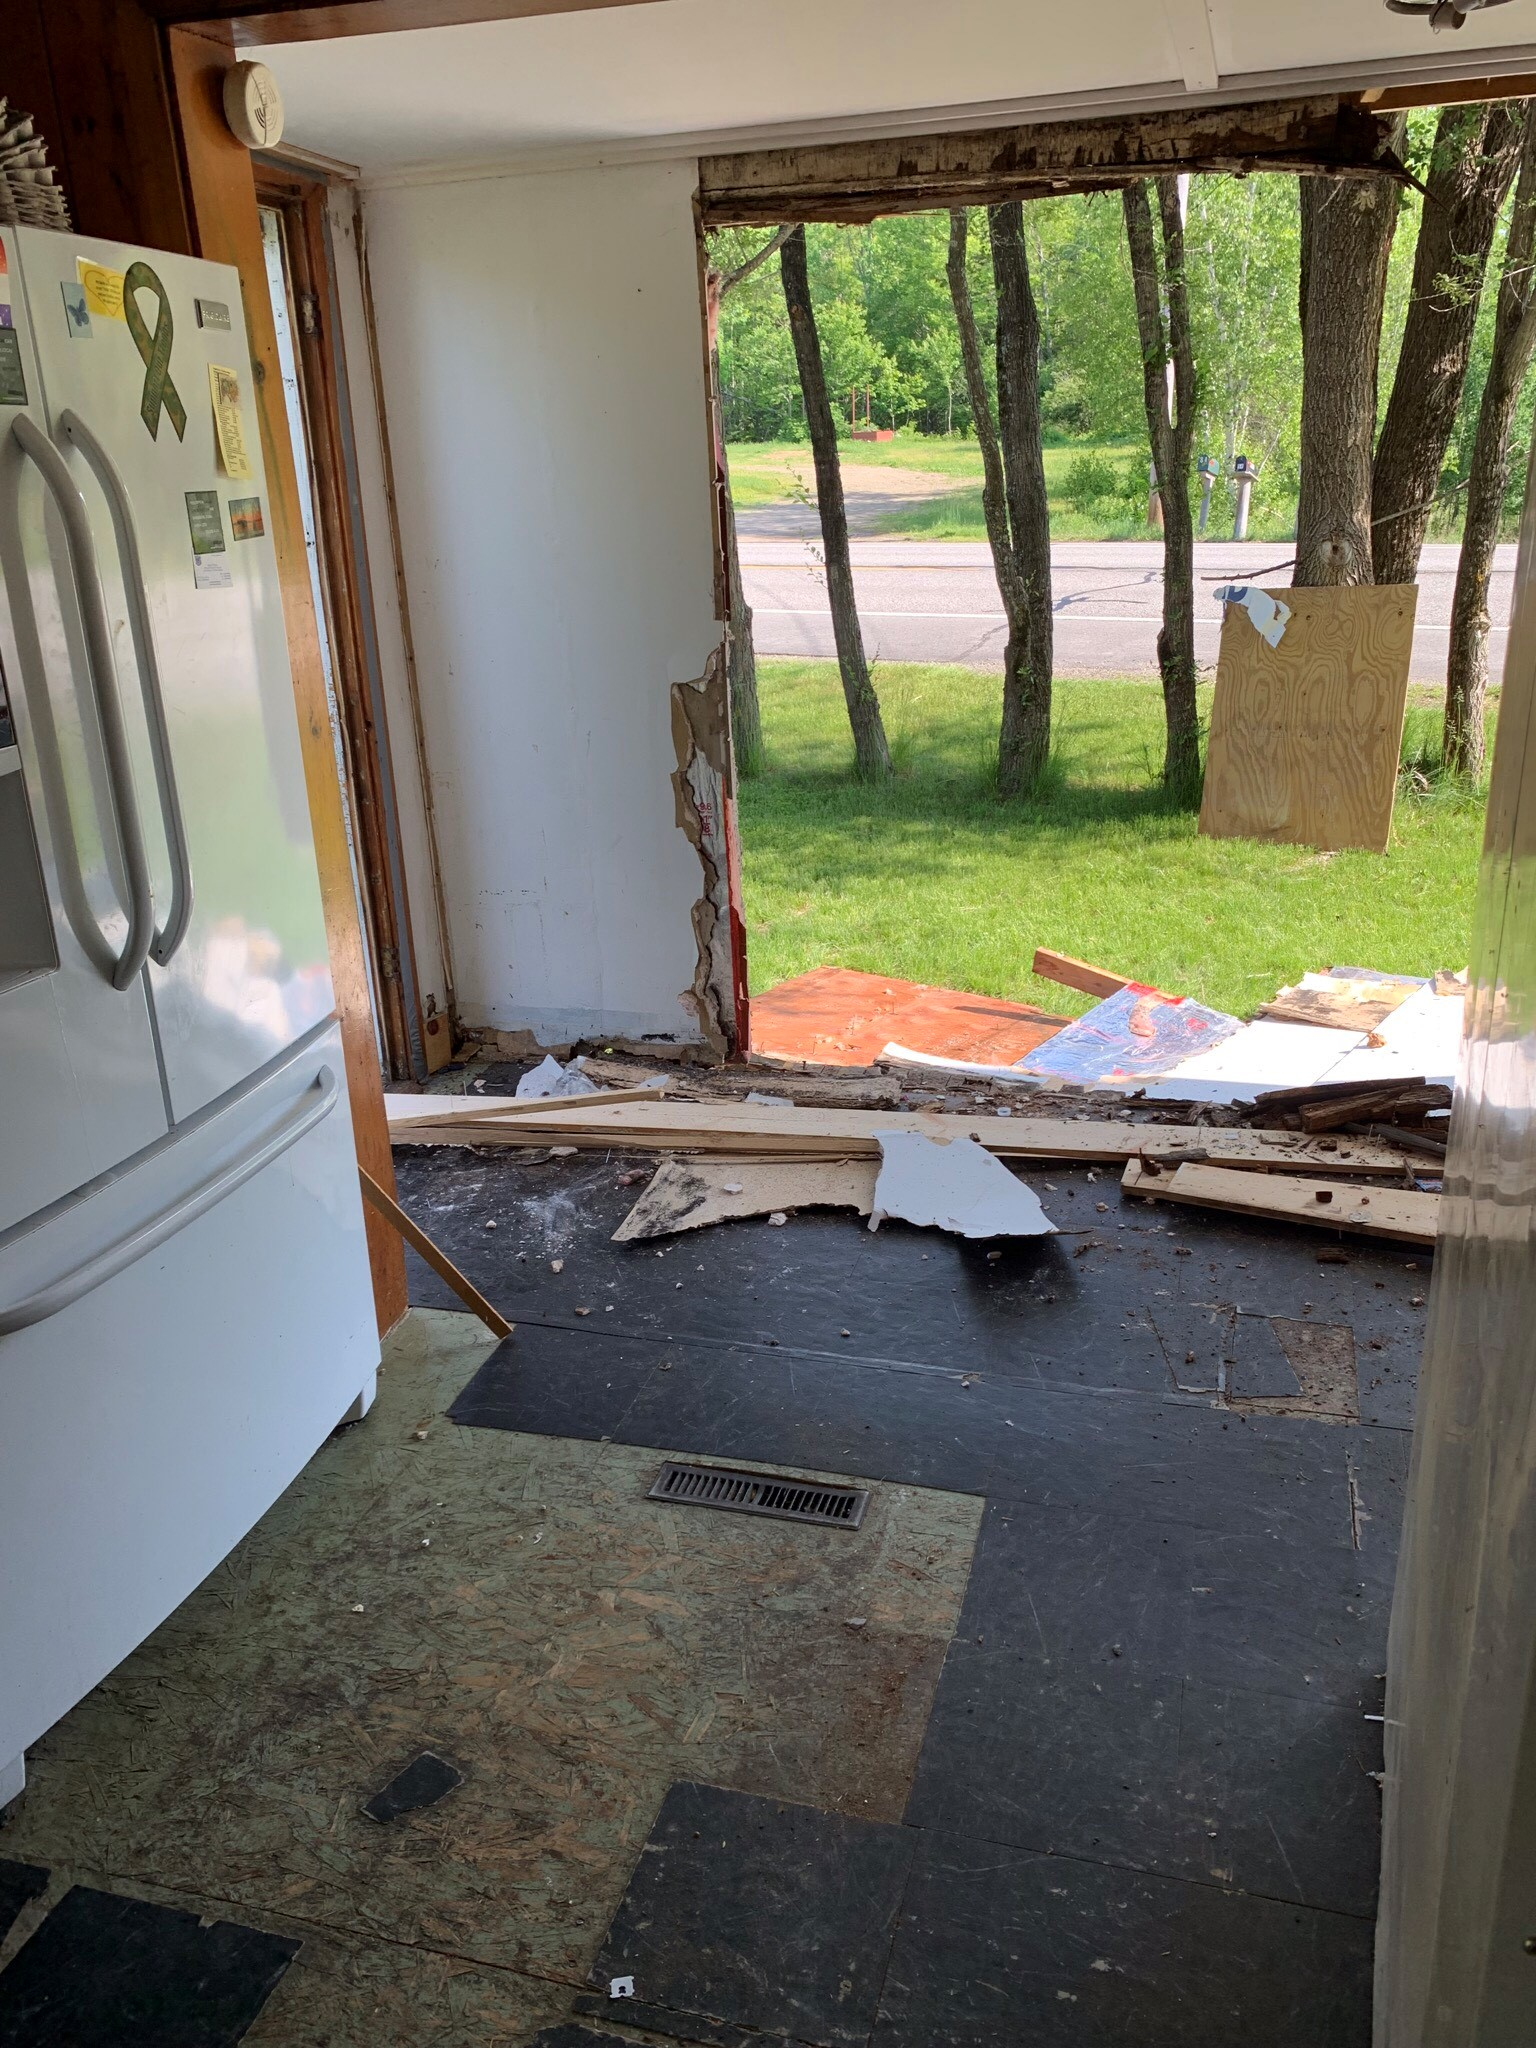 Kitchen remodel at the Garry Owen House in Maine - hole in the wall.